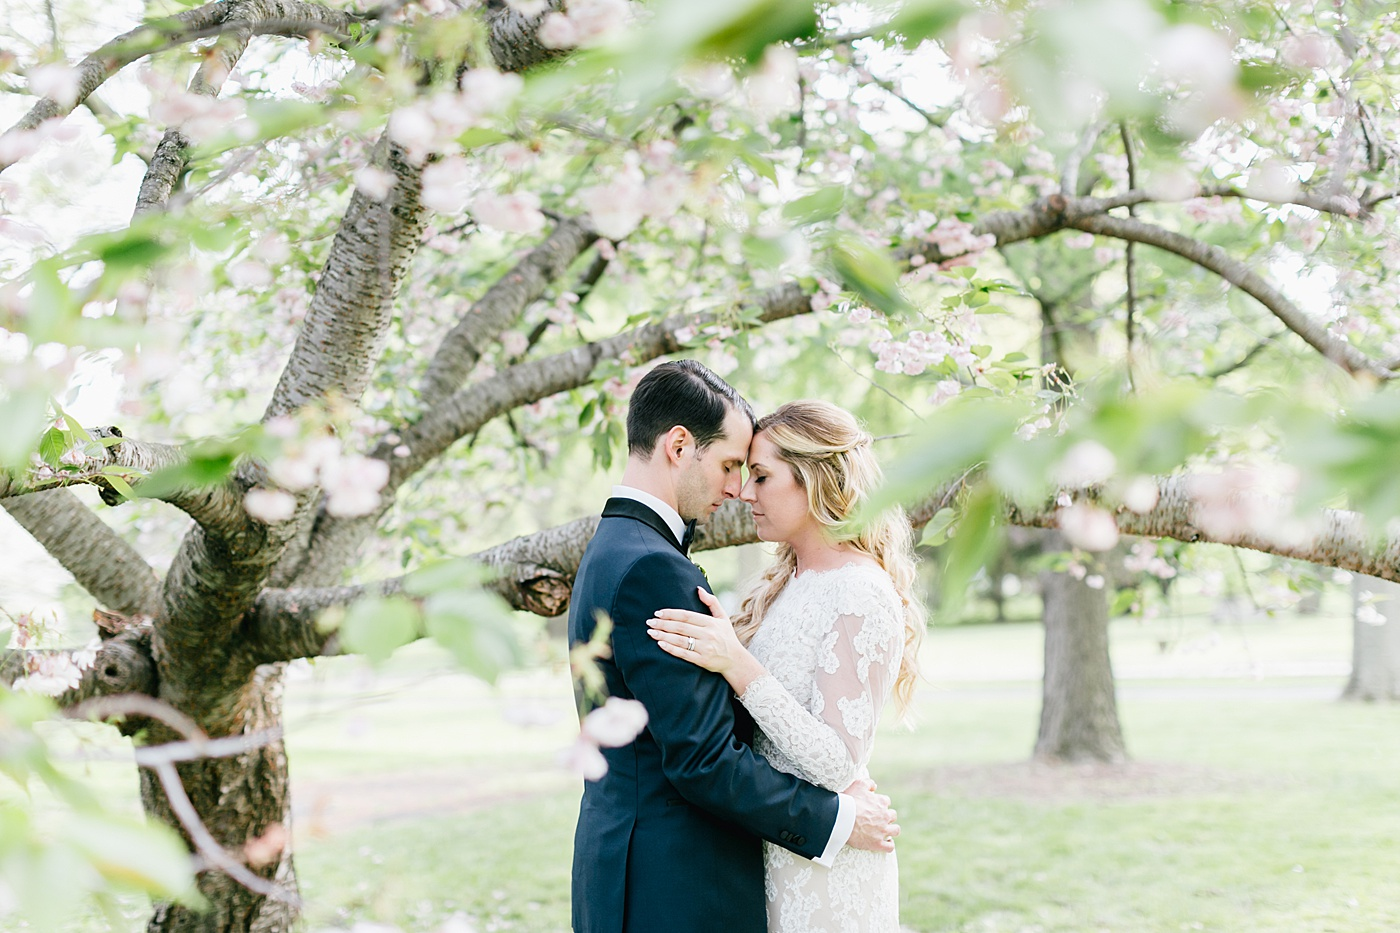 Horticulture Center Wedding, Philadelphia, Blush Watercolor, Rustic Chic